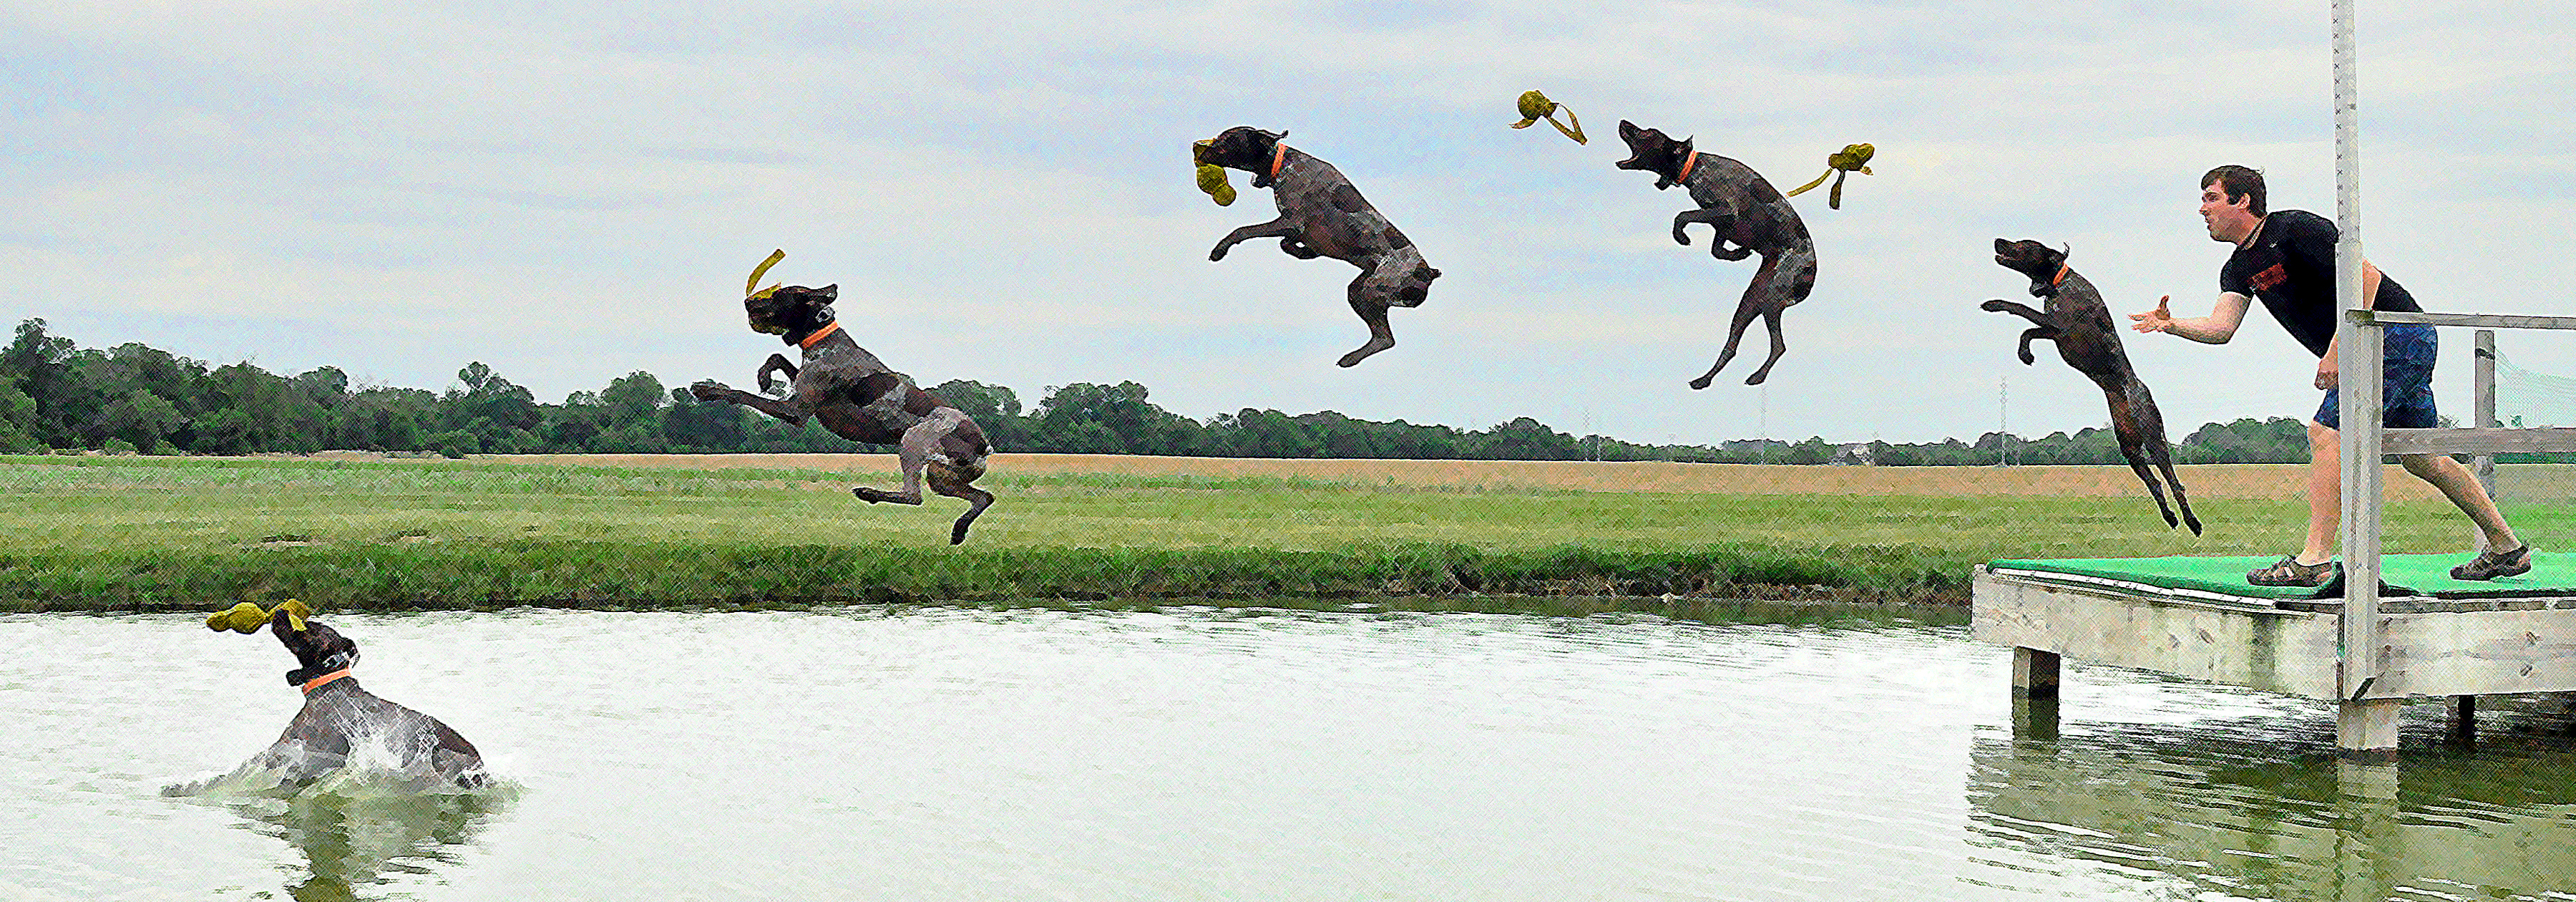 Addicted To Dockdogs The Little Gsp